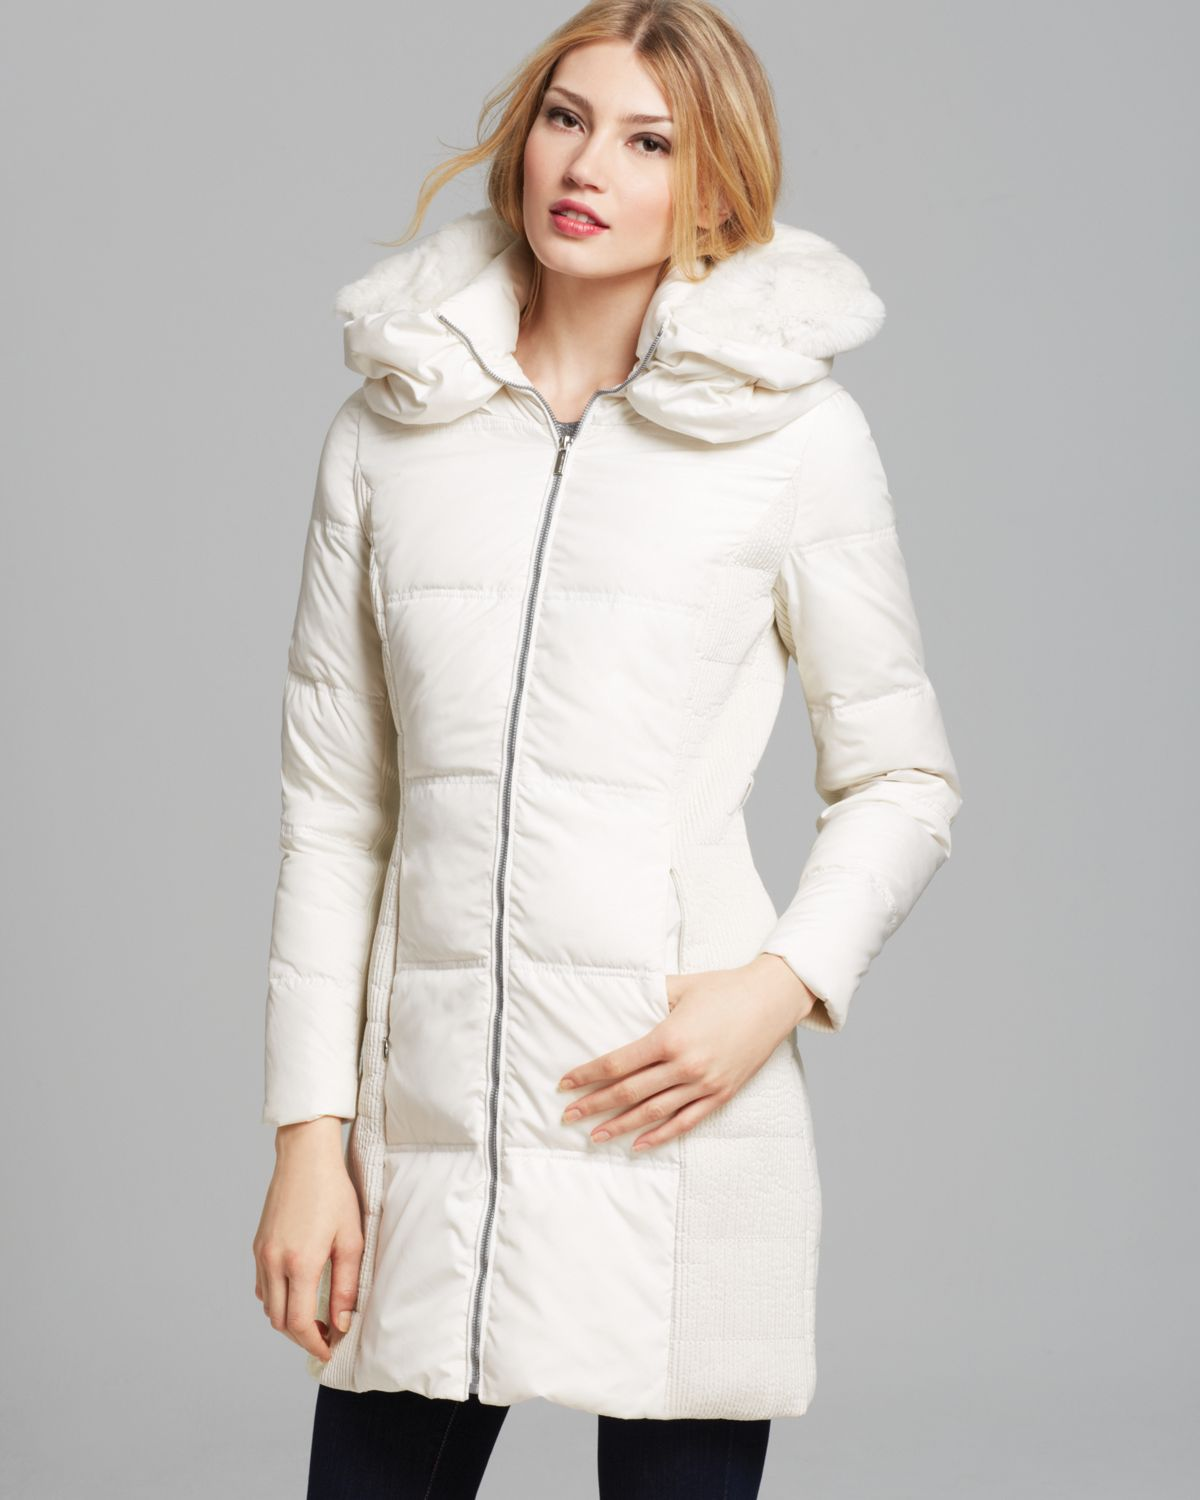 Bcbgmaxazria Down Jacket with Fur Collar in White | Lyst